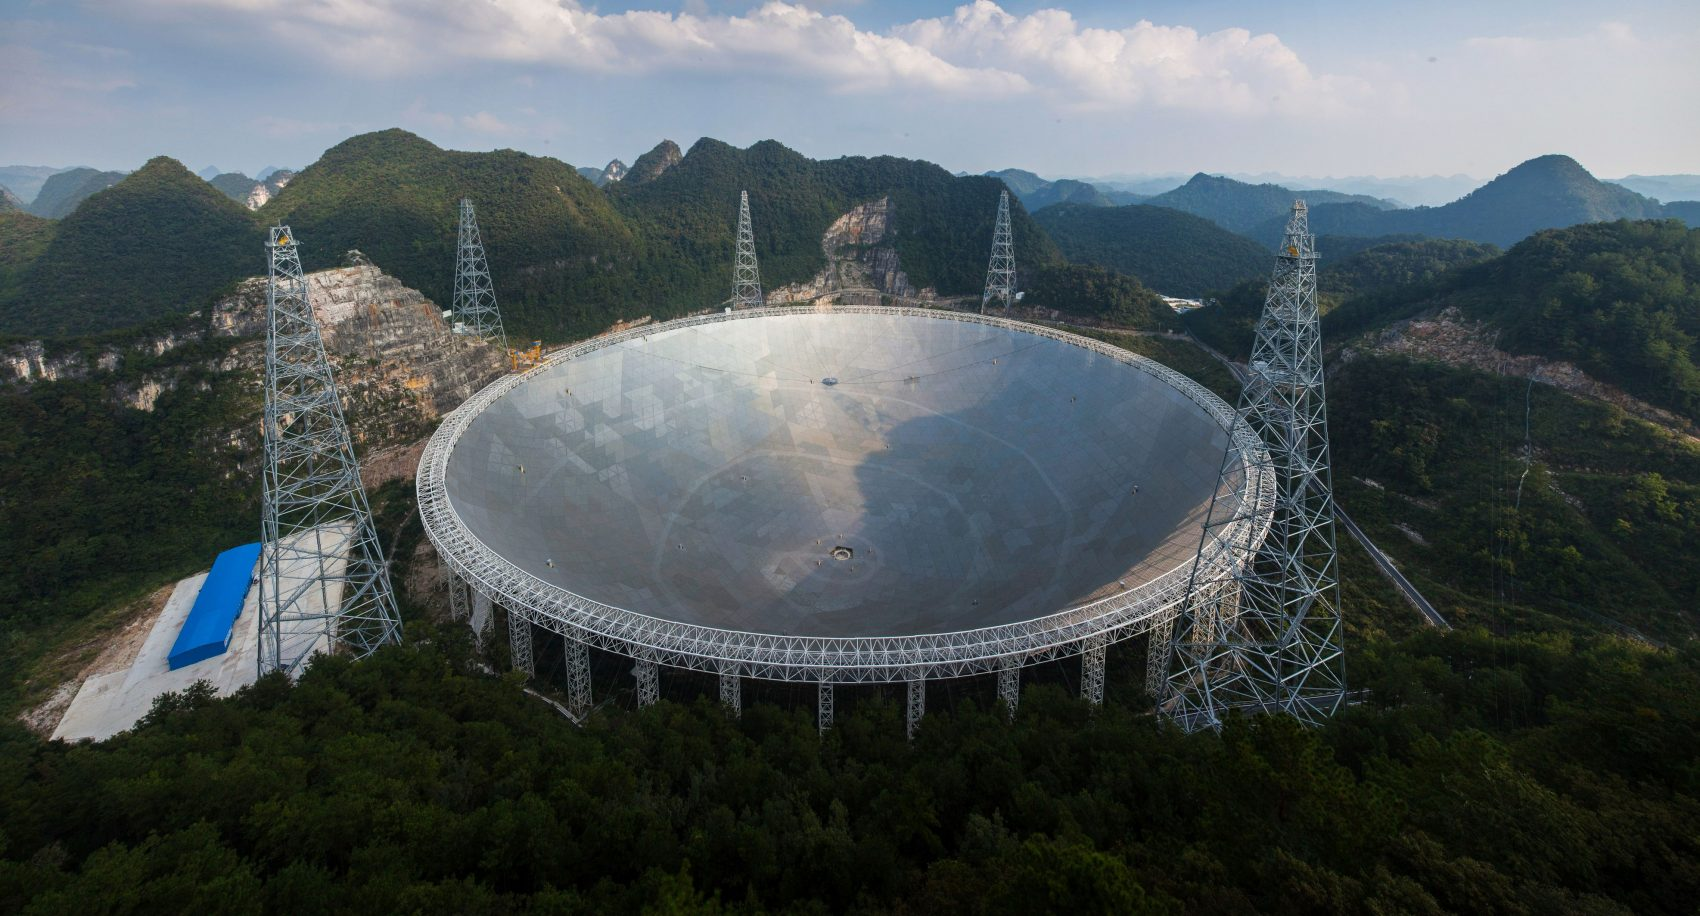 This picture taken on Sept. 24, 2016 shows the Aperture Spherical Radio Telescope (FAST) in Pingtang, in southwestern China's Guizhou province. (STR/AFP/Getty Images)